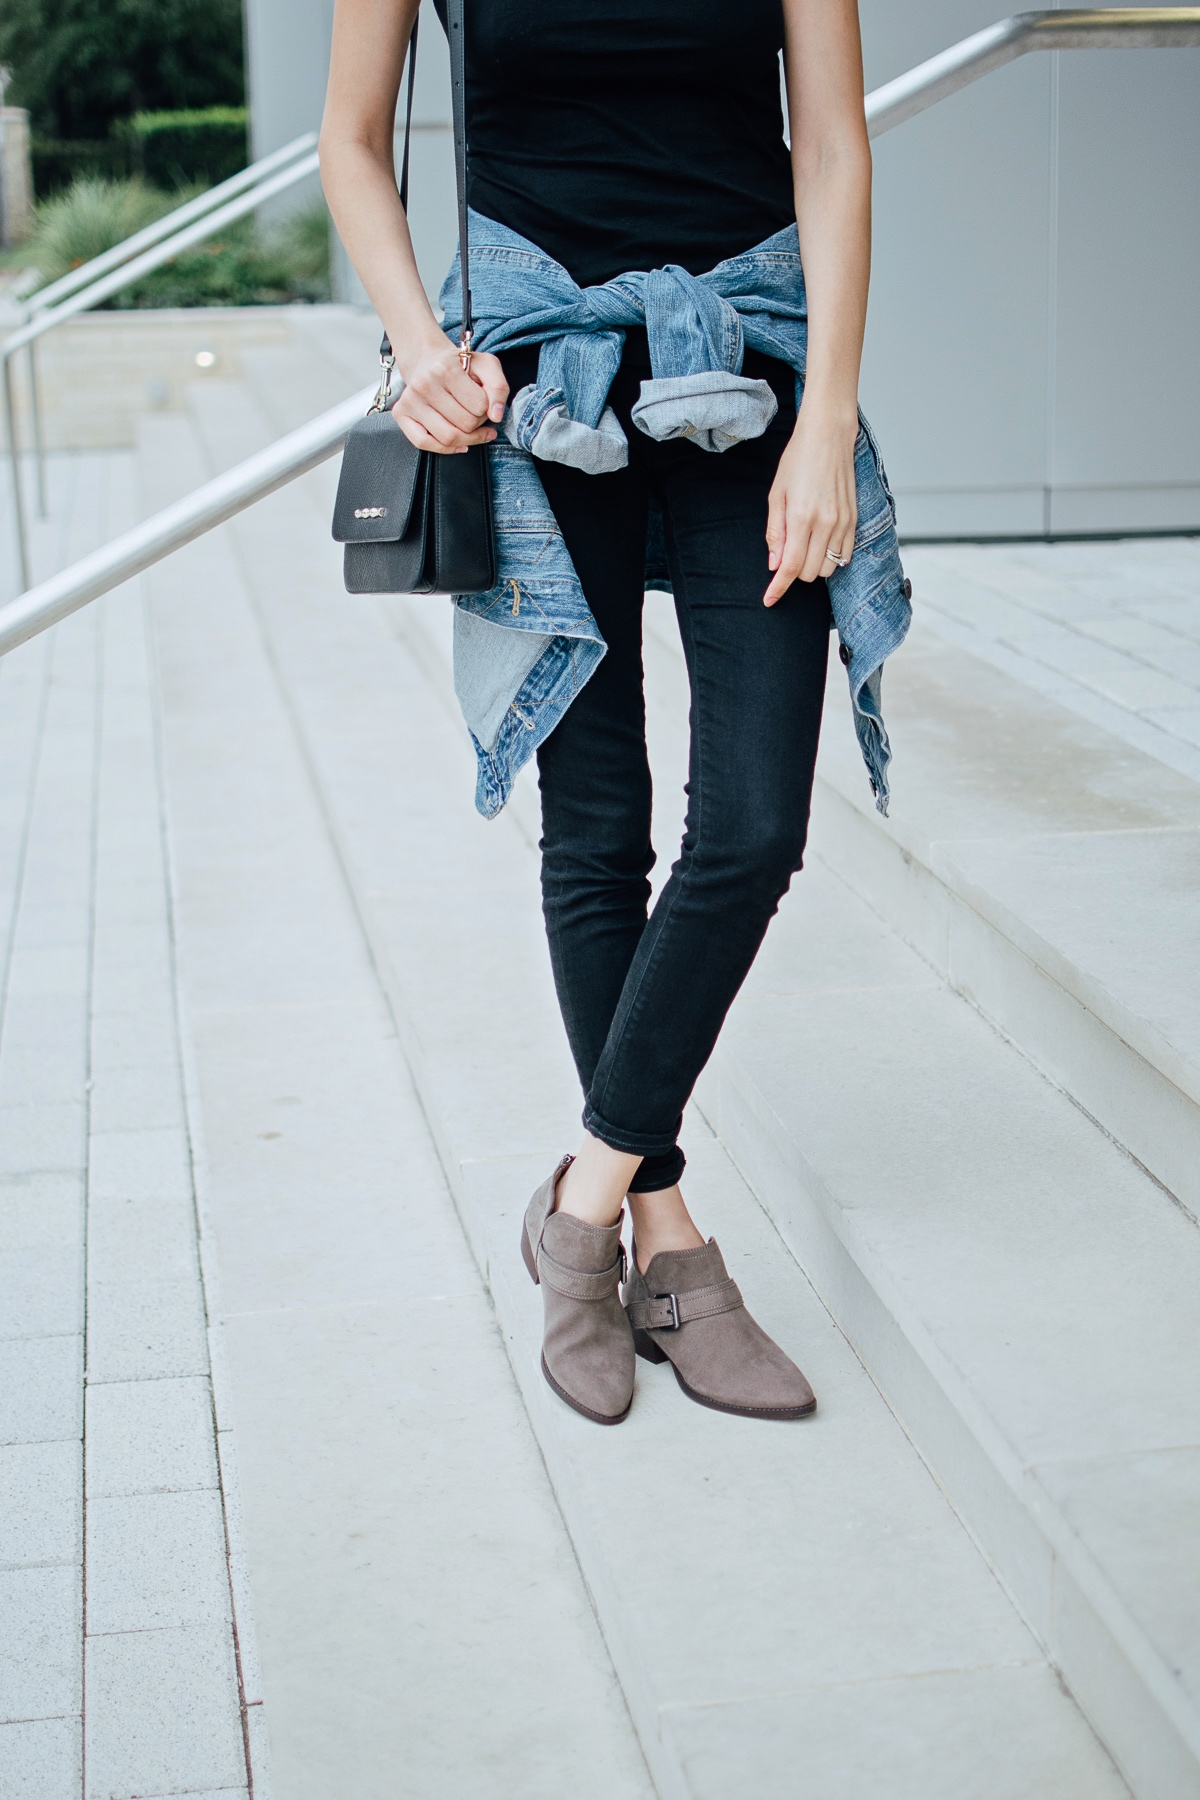 Daily Craving wearing a pair of versatile boots with black skinny jeans and a basic black tee